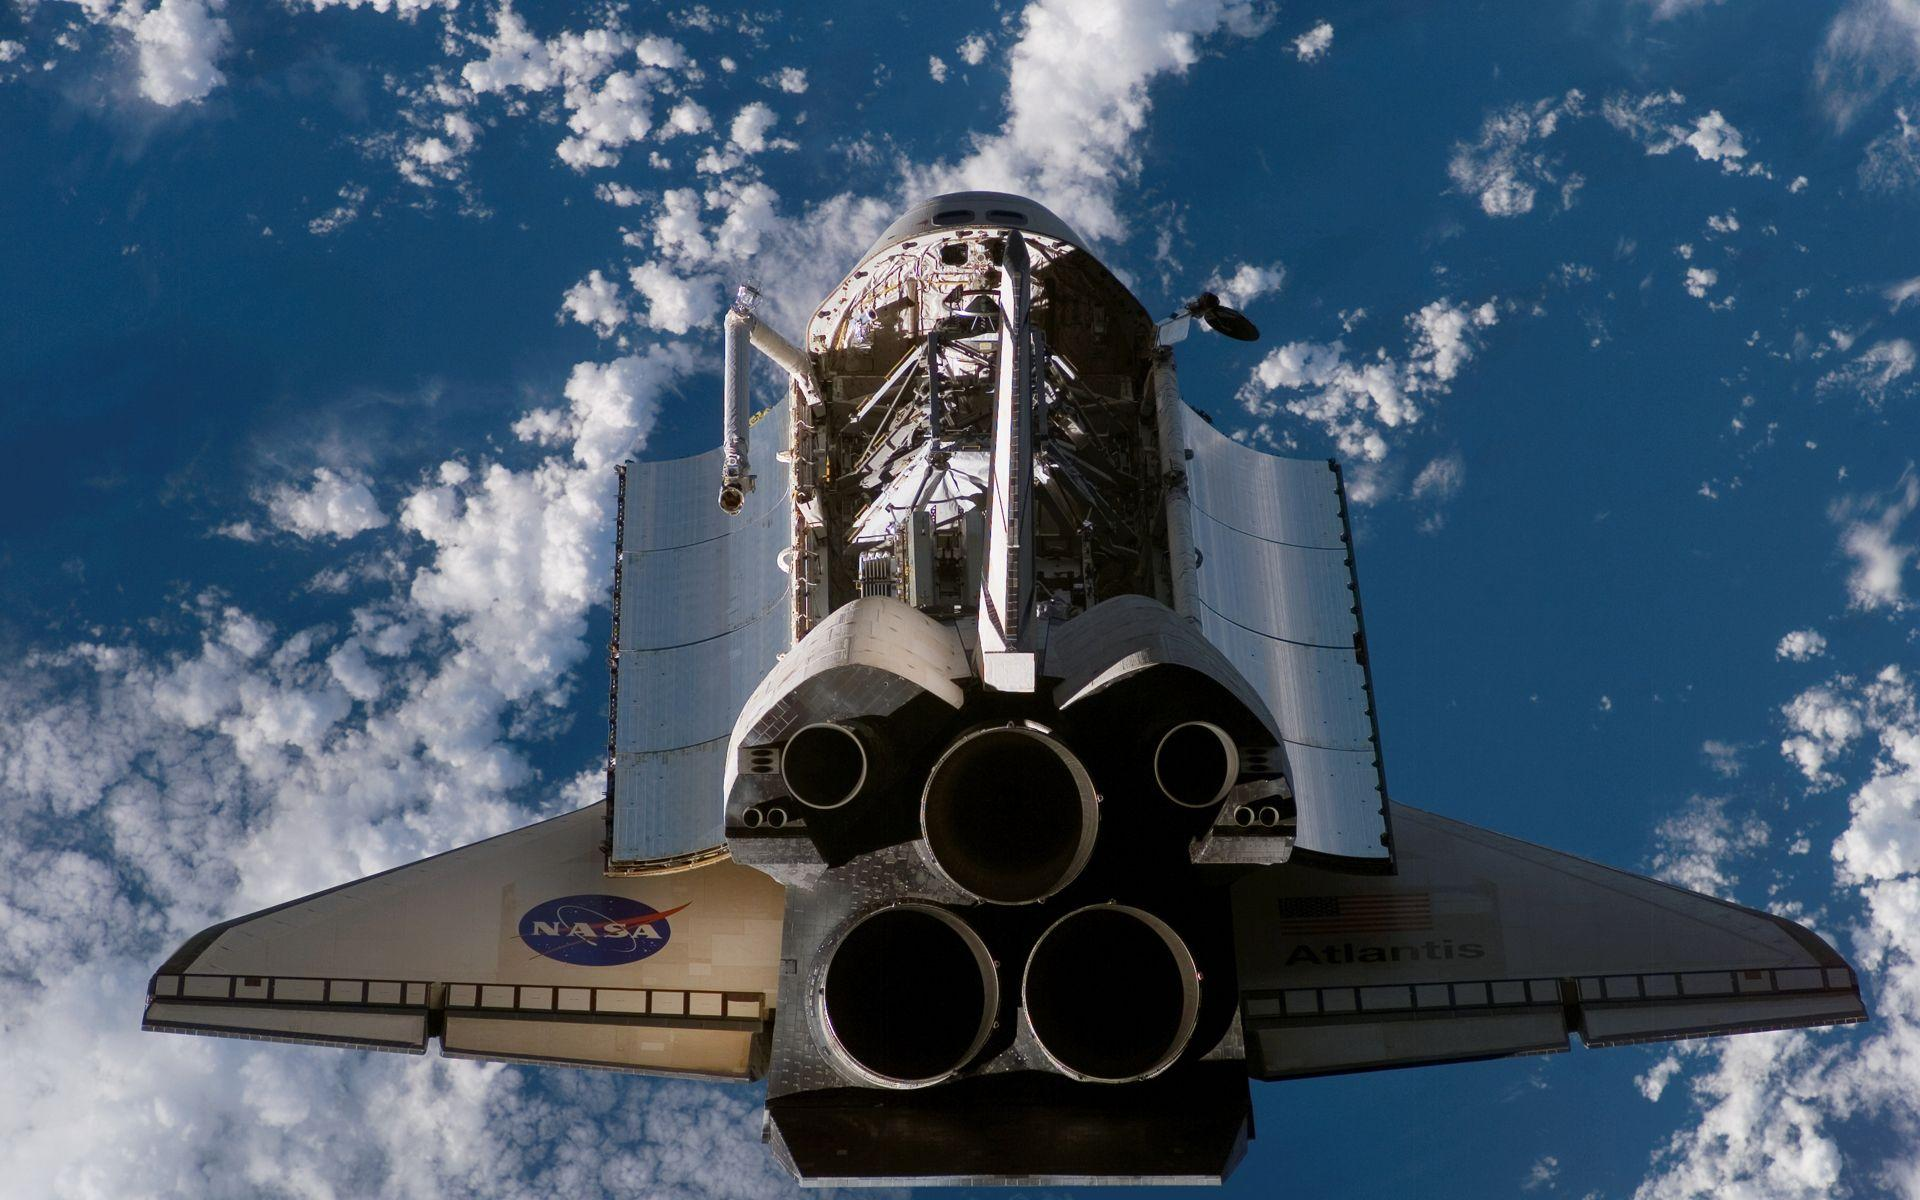 Space Shuttle atlantis Full HD Wallpaper and Background Image ...